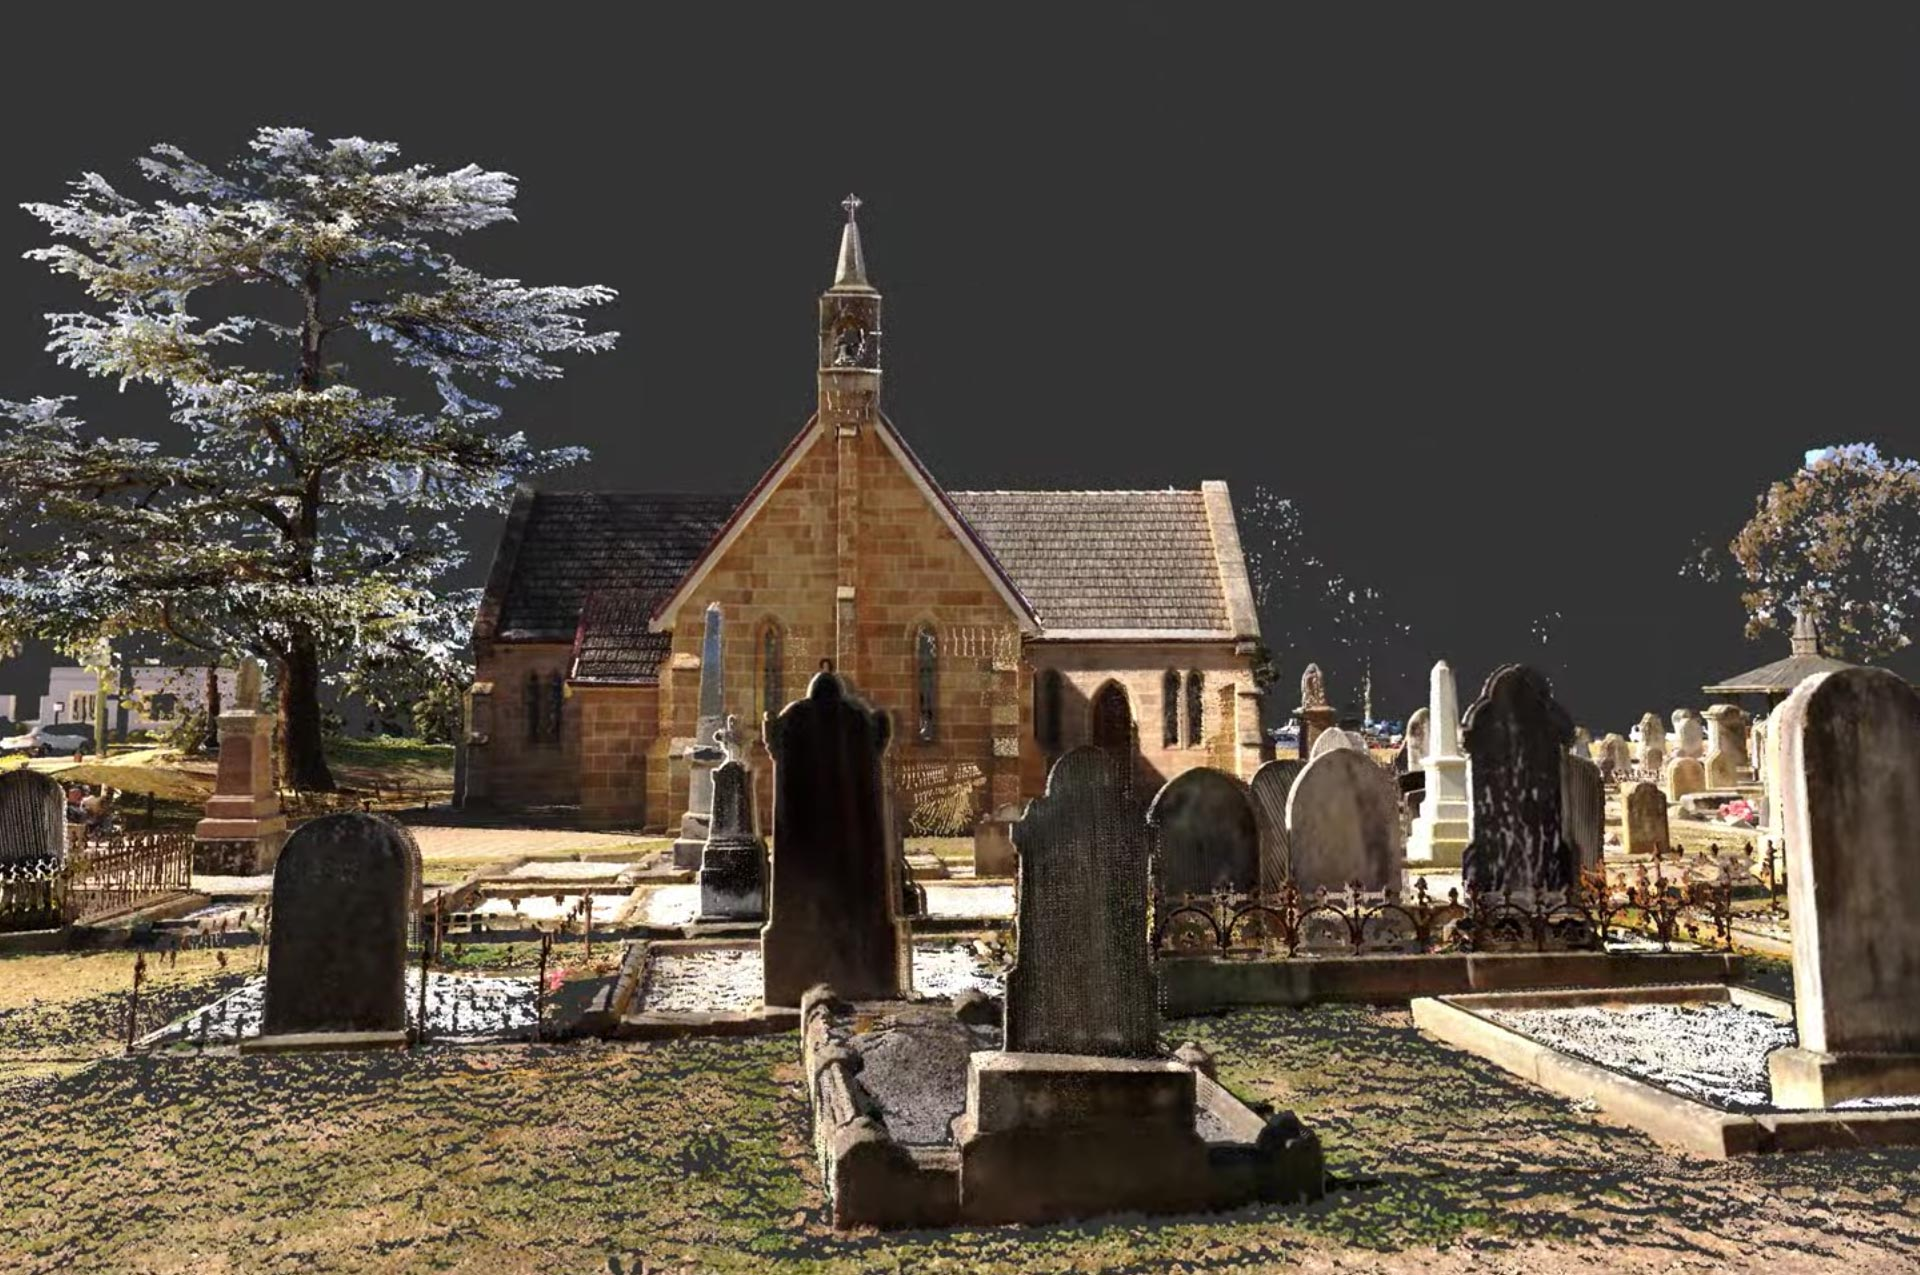 3D scanning Building of Saint Marys Church